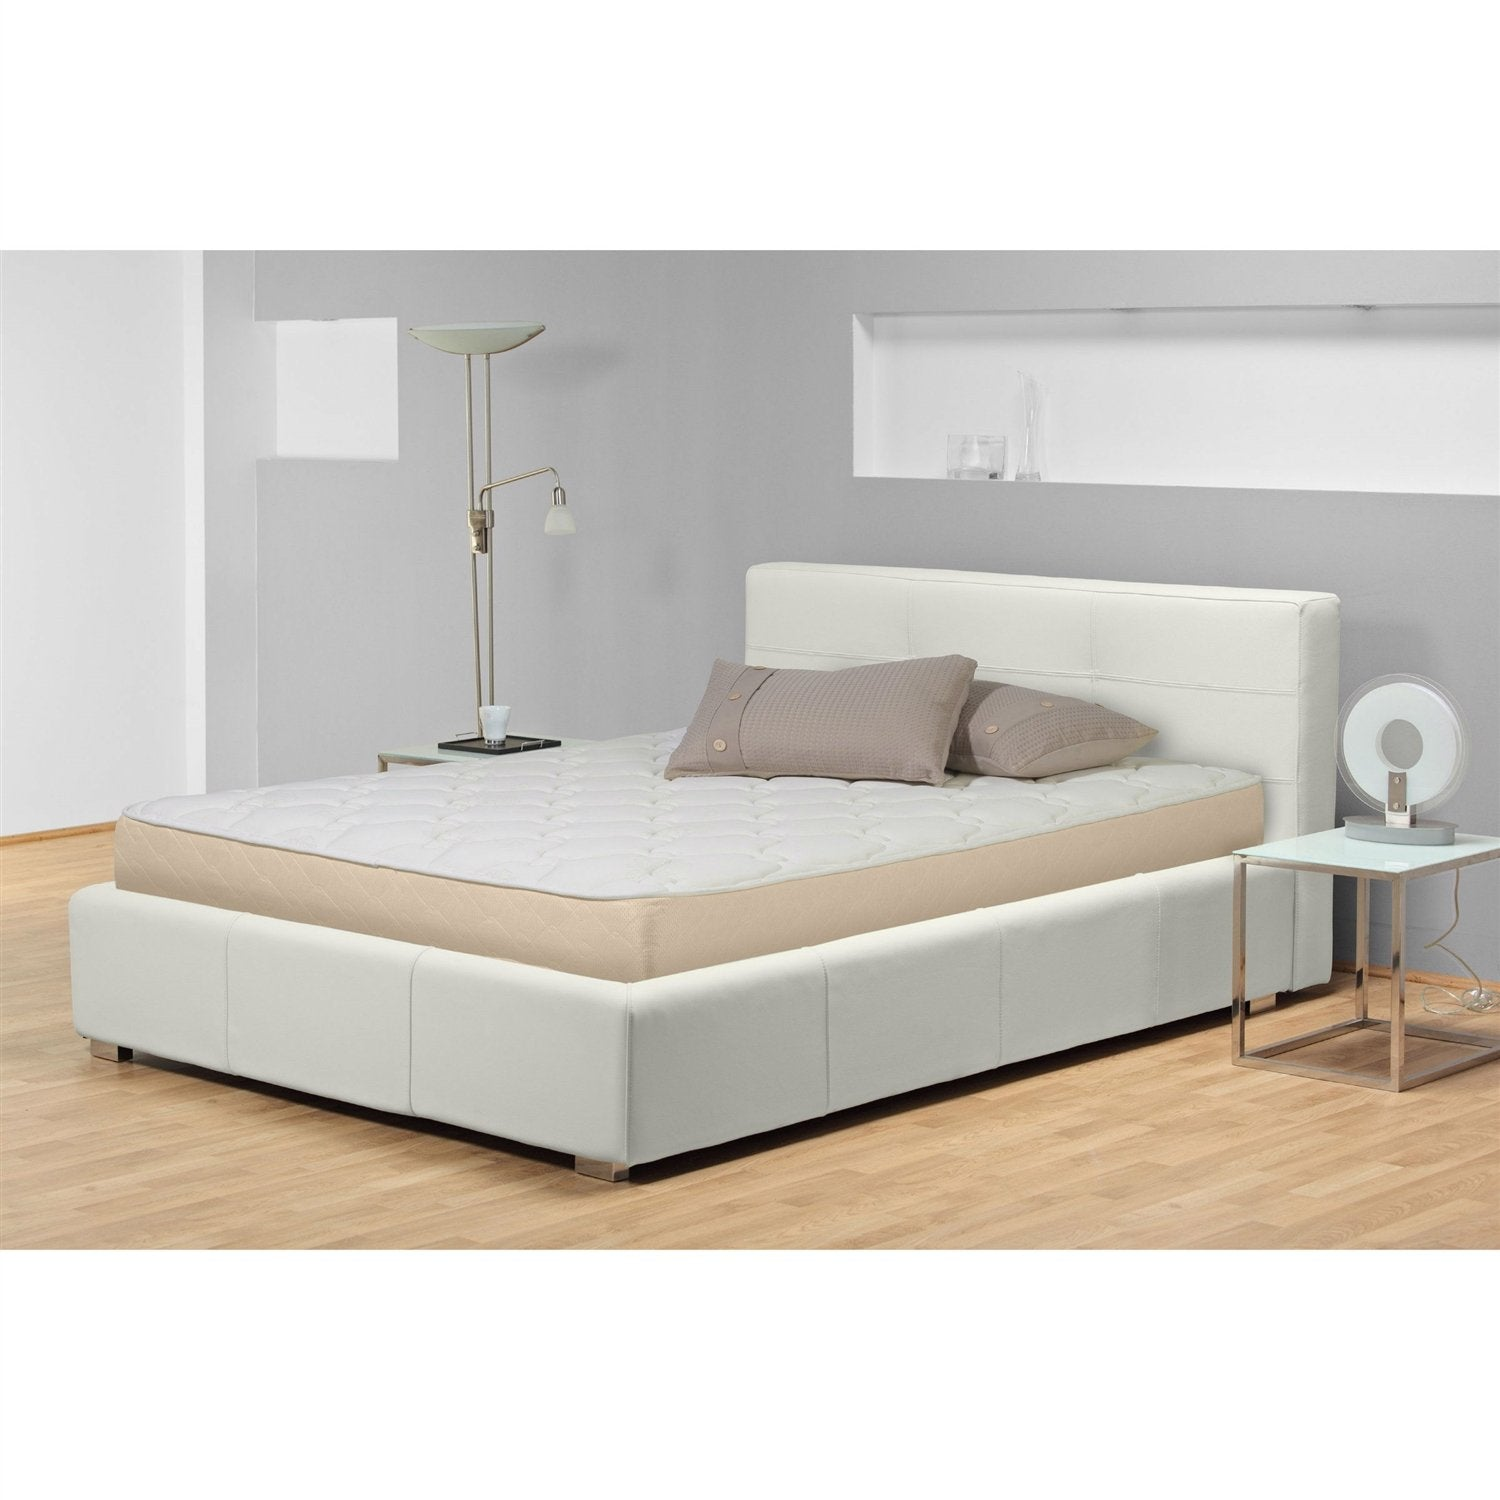 Twin size Firm 9-inch High Profile Innerspring Mattress with Fabric Cover